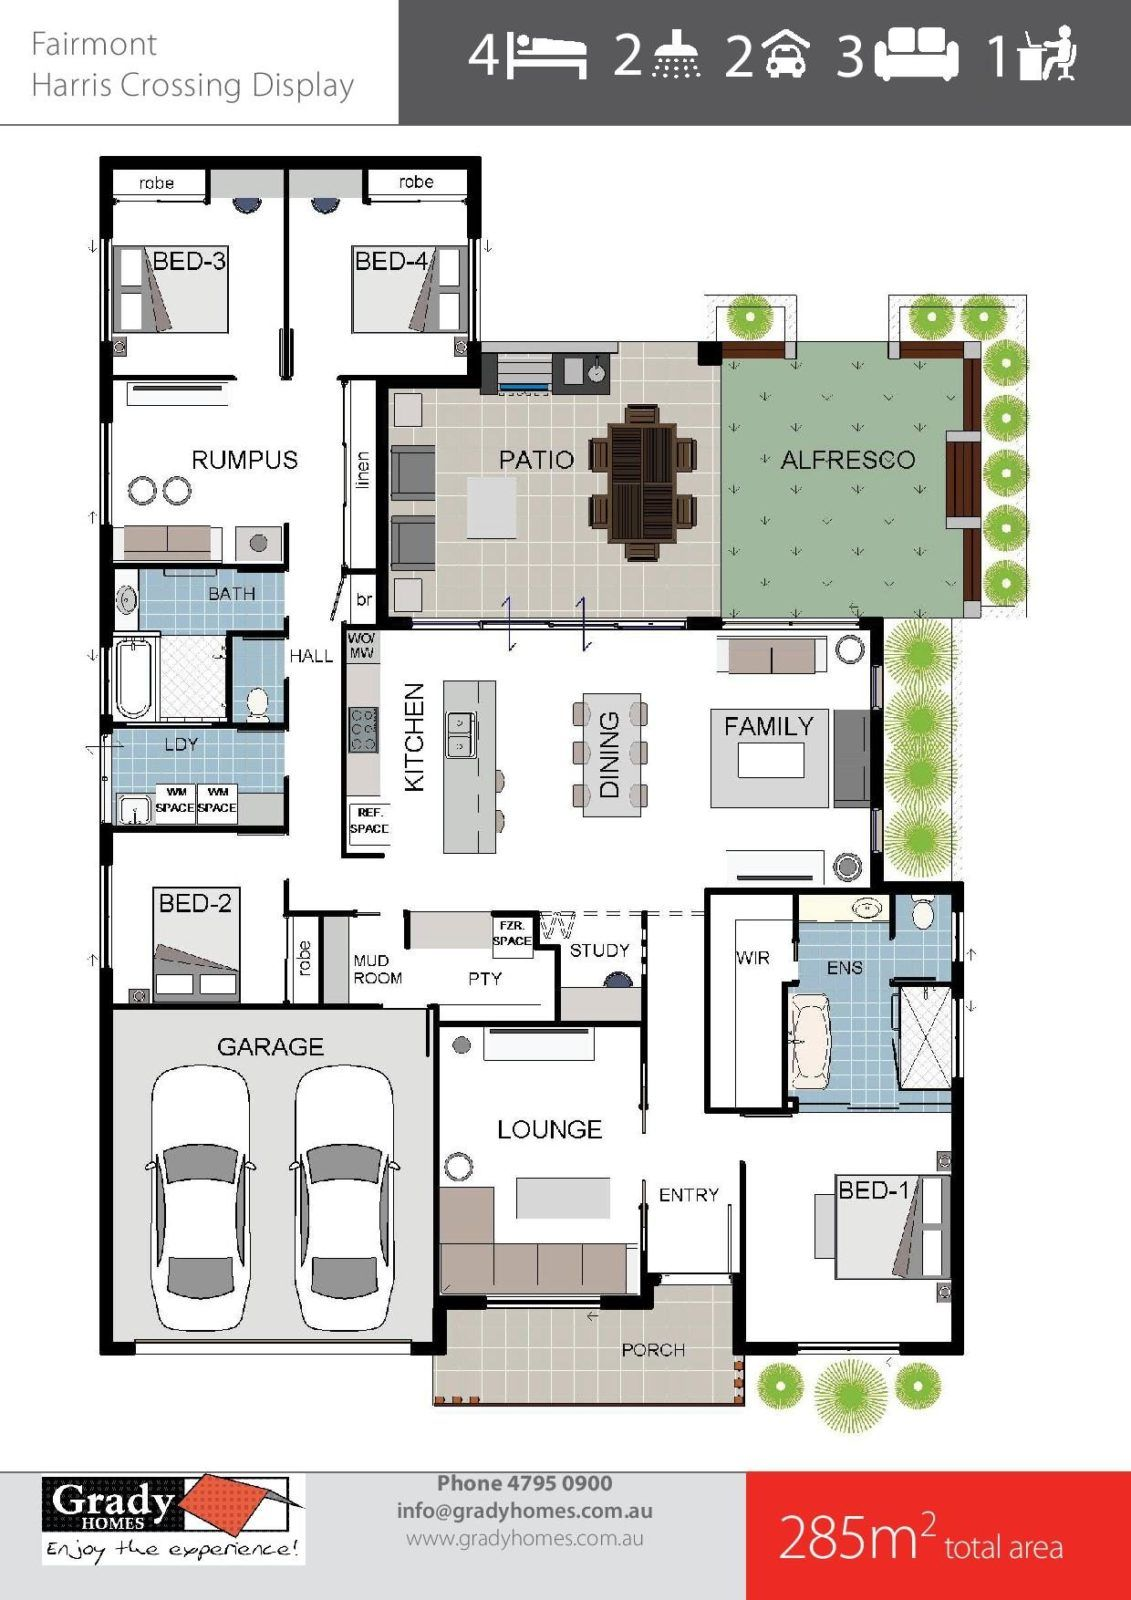 Grady Homes Floor Plans Fairmont 285sqm House Design In 2021 Family House Plans House Plans Dream House Plans